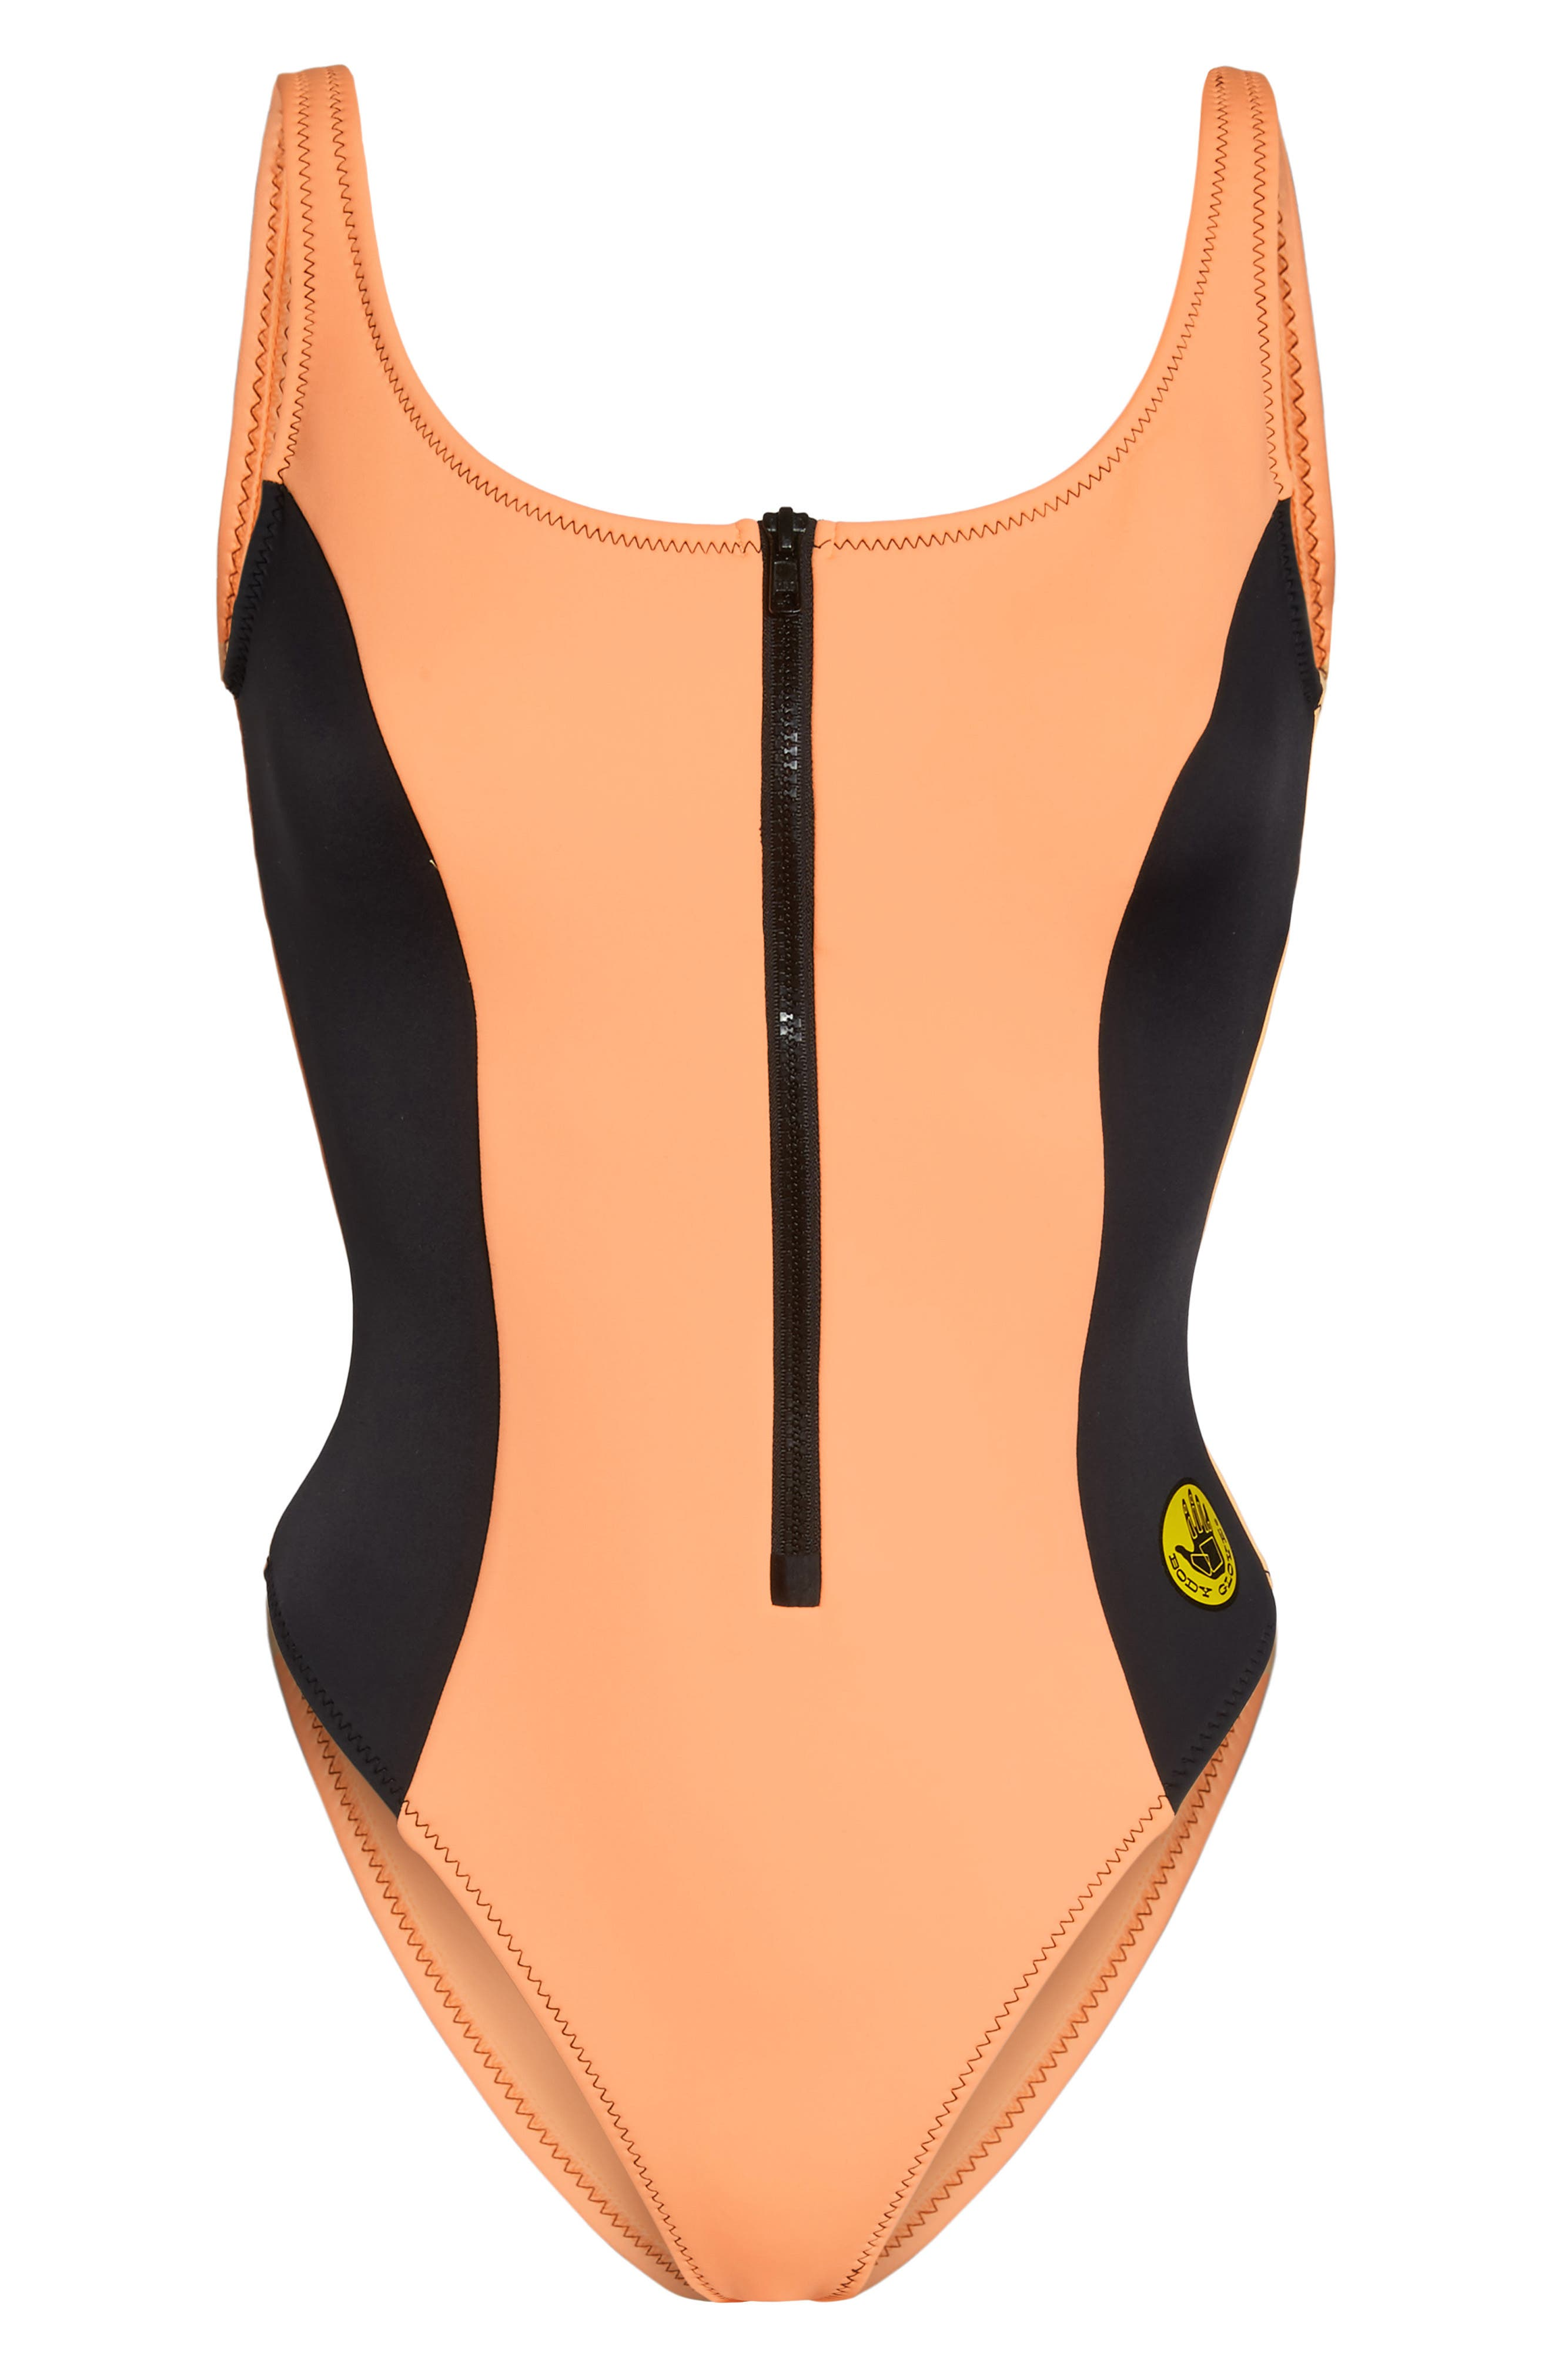 Time After Time One-Piece Swimsuit,                             Alternate thumbnail 6, color,                             816